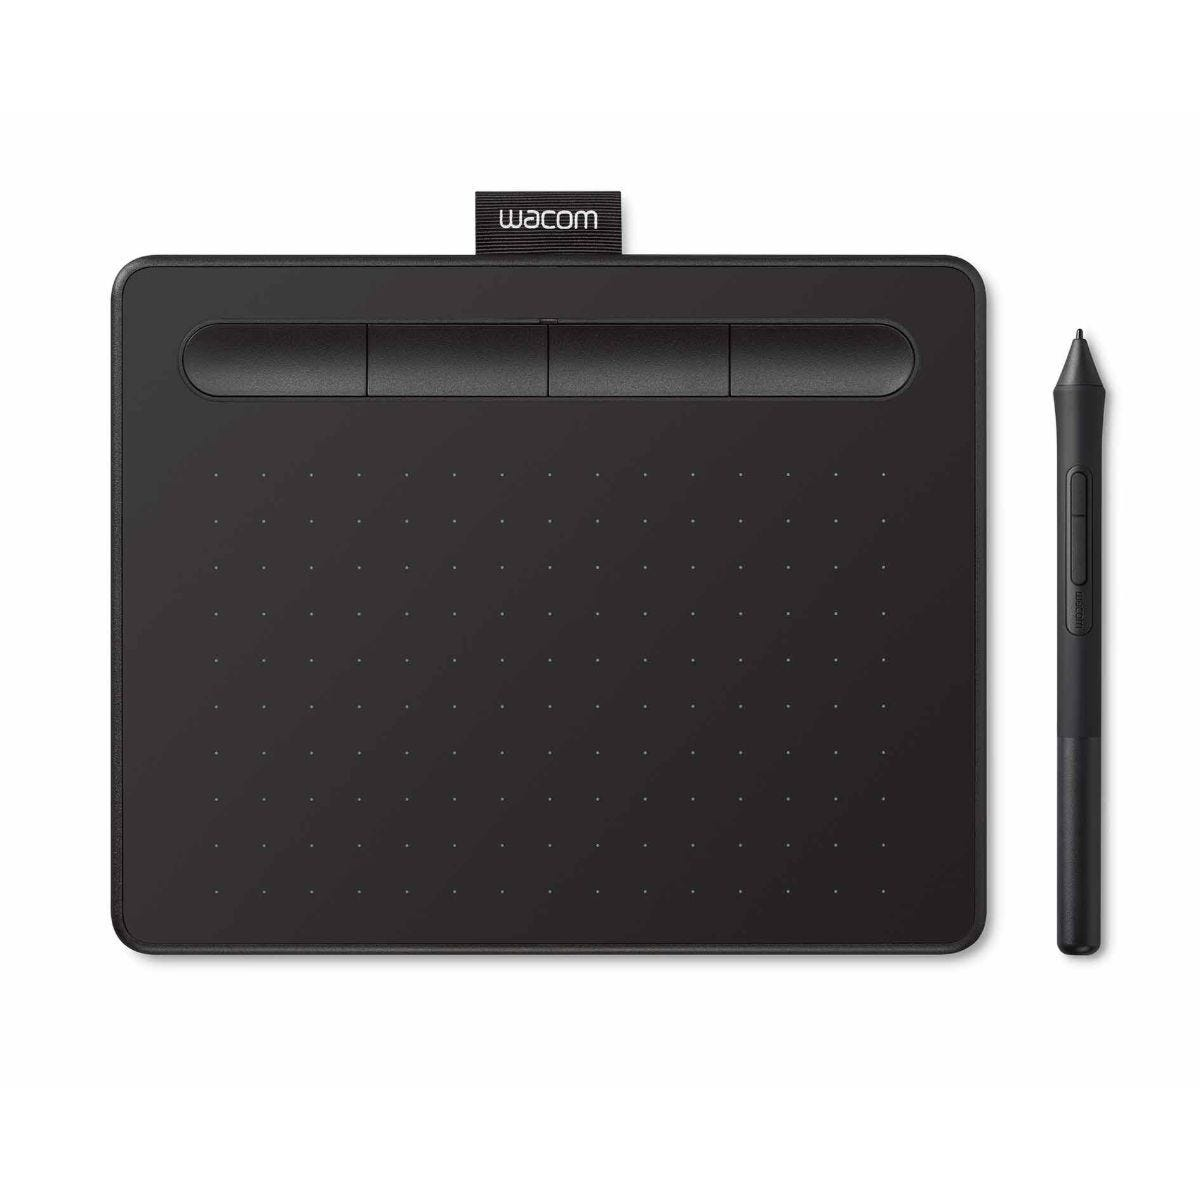 Wacom Intuos S Creative Pen Tablet with Bluetooth